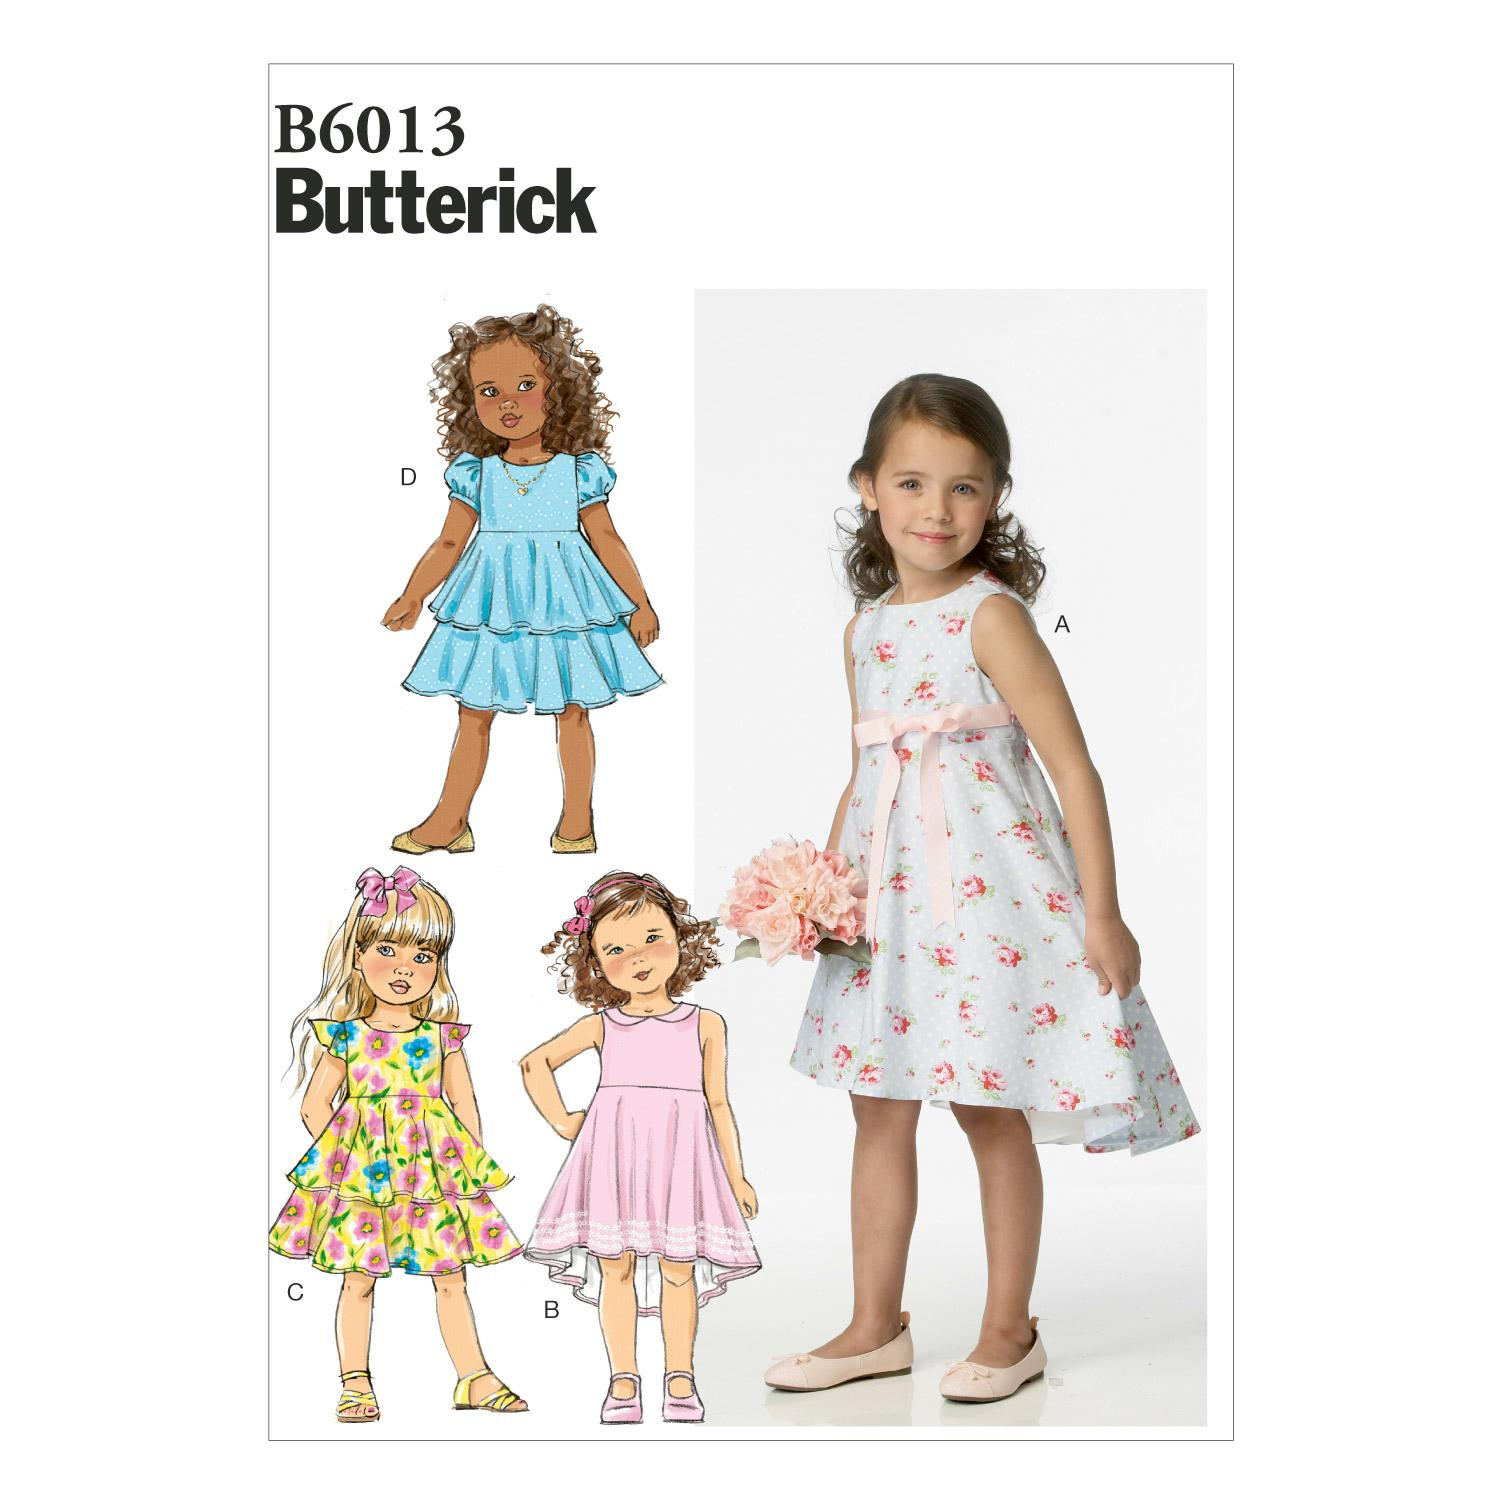 Butterick B6013 Children's/Girls' Dress